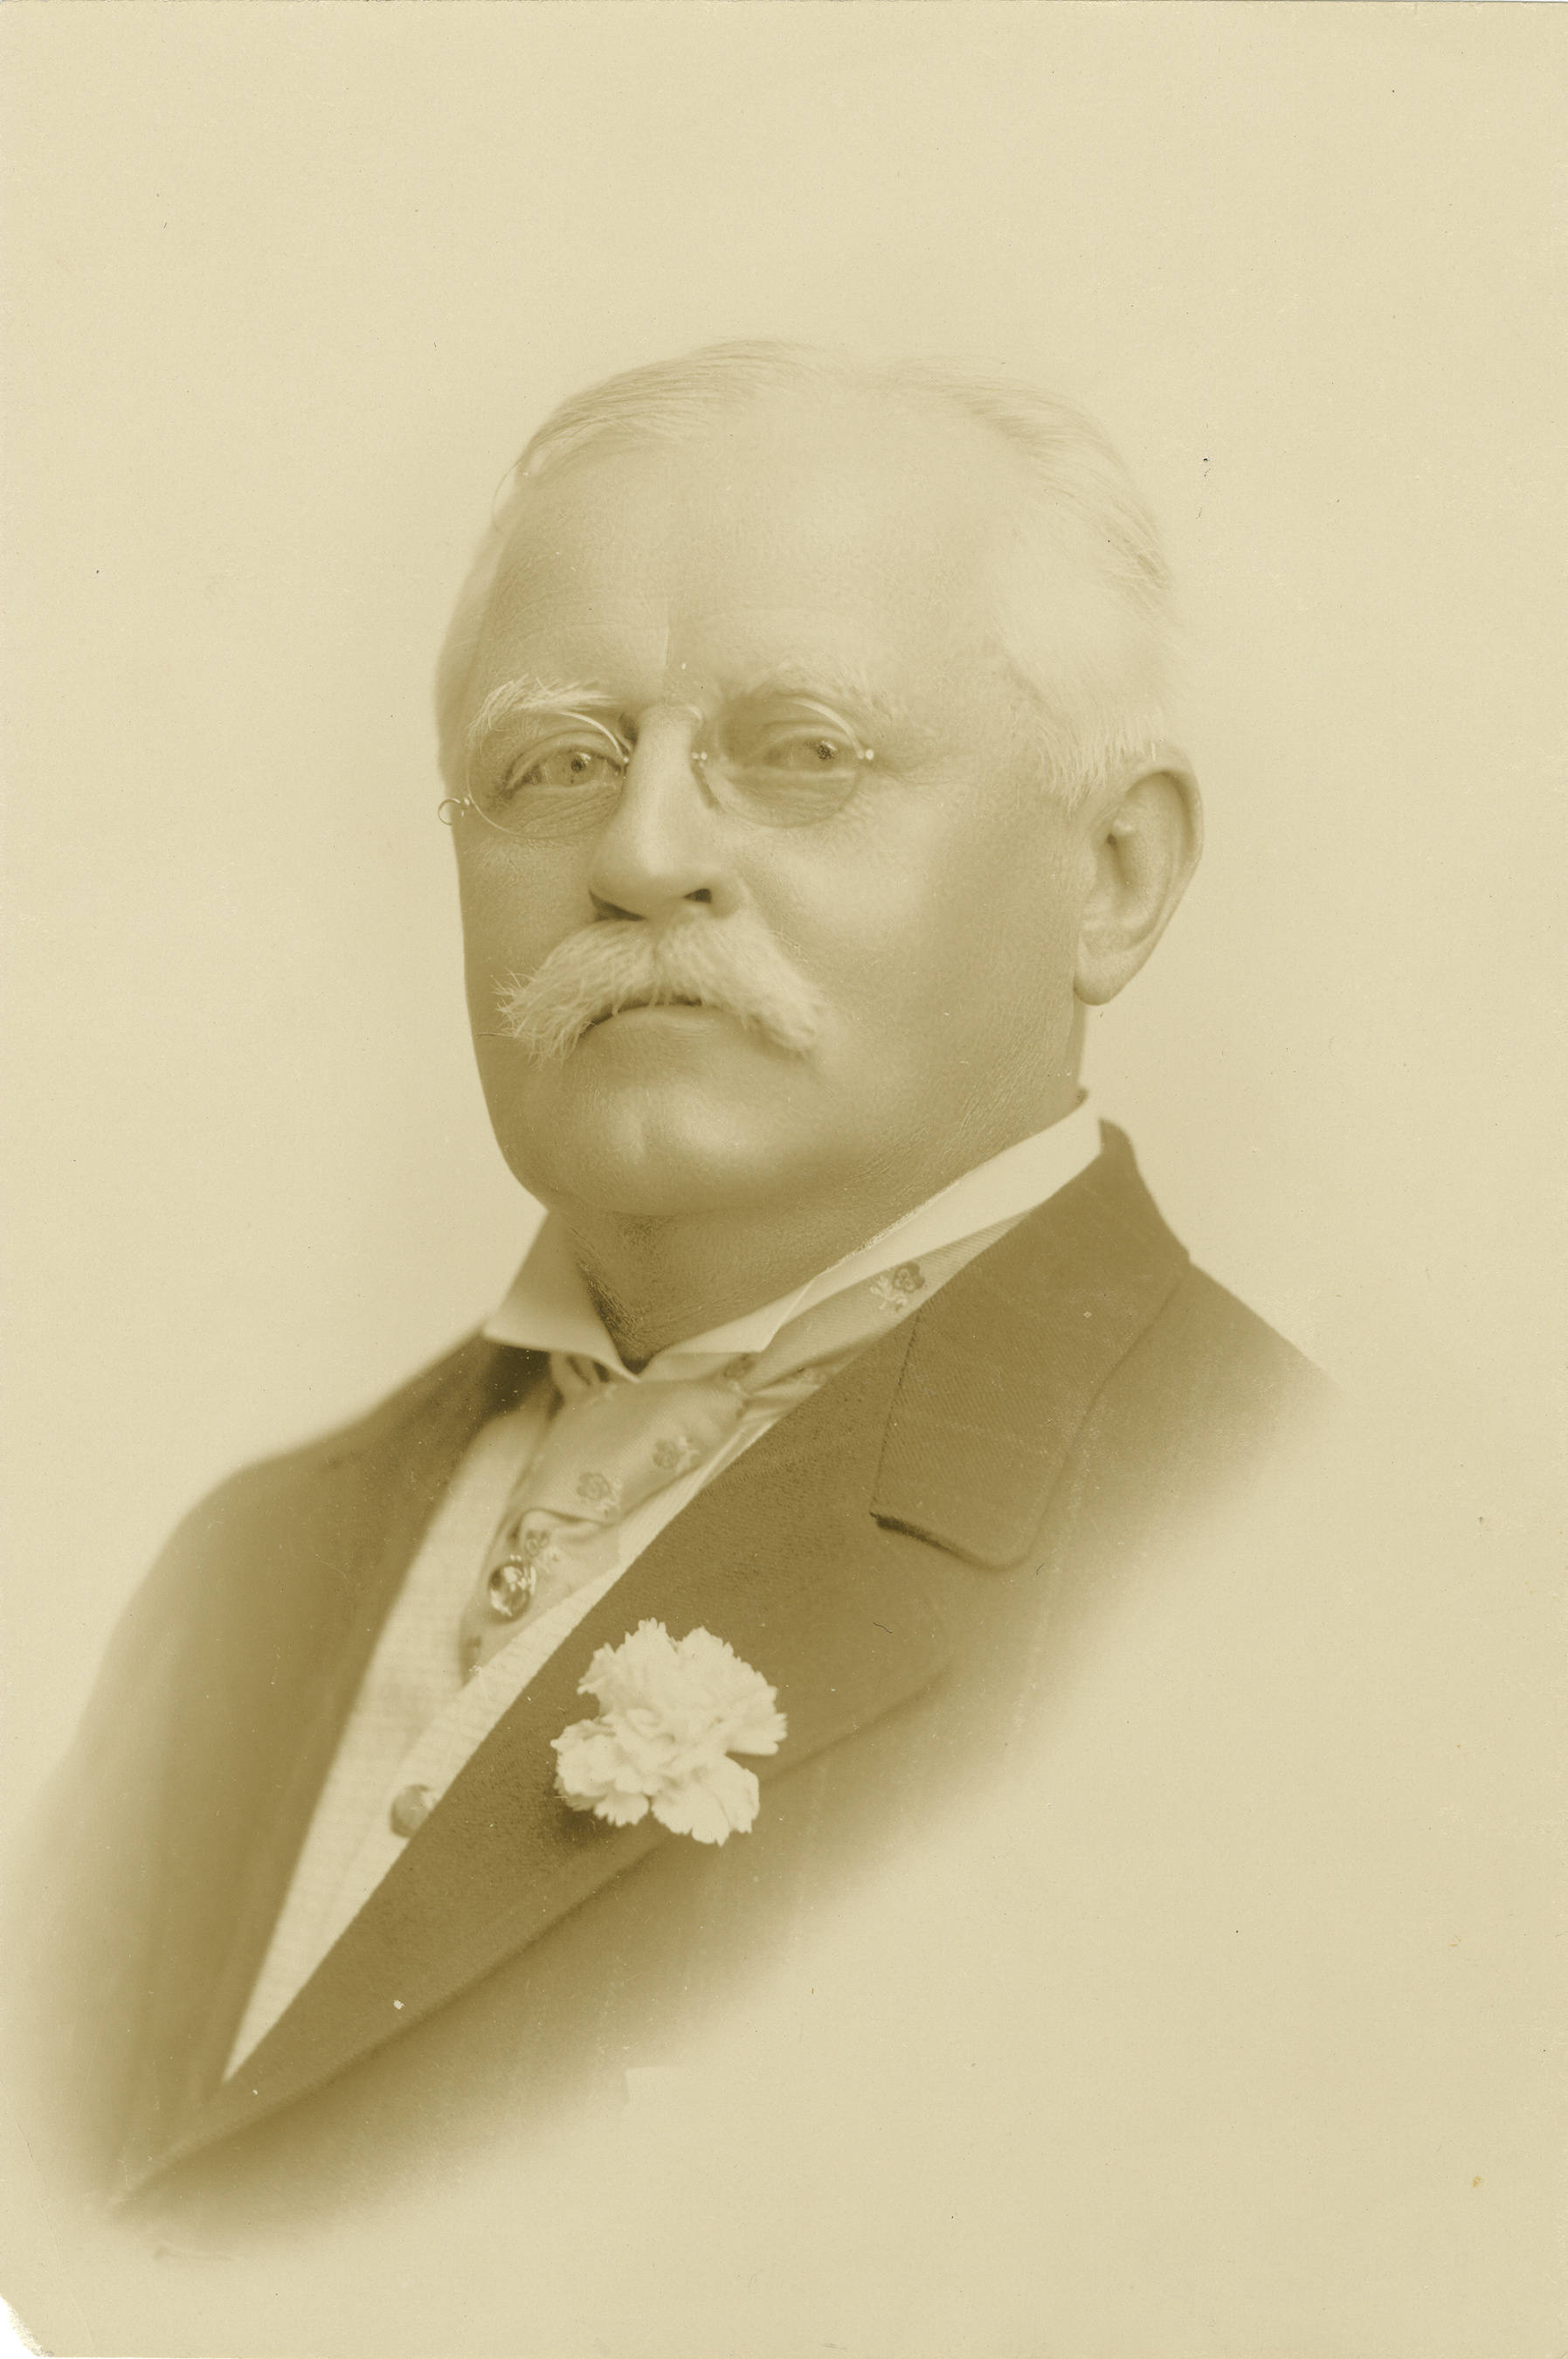 """A posed portrait of a man with short gray hair and mustache, wearing a jacket, necktie with pin, pince-nez eyeglasses, and a carnation on his jacket lapel, facing left and looking at the camera."" Source: The Carolina Story."